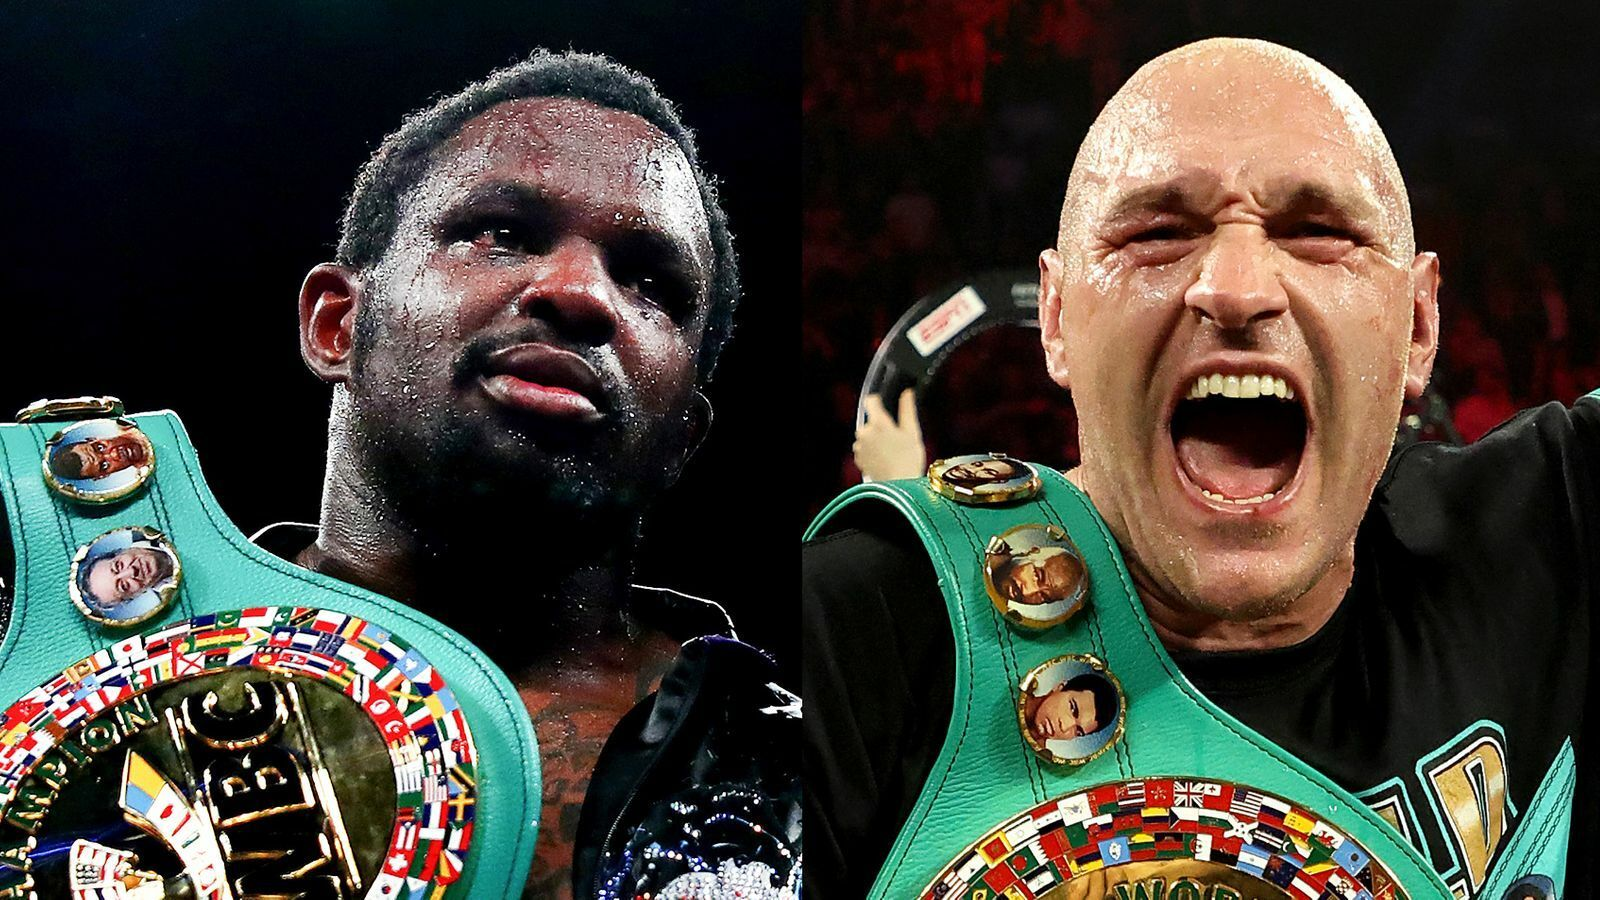 Tyson Fury will decide next opponent with Dillian Whyte and Joe Joyce his standout options for UK return, says Bob Arum